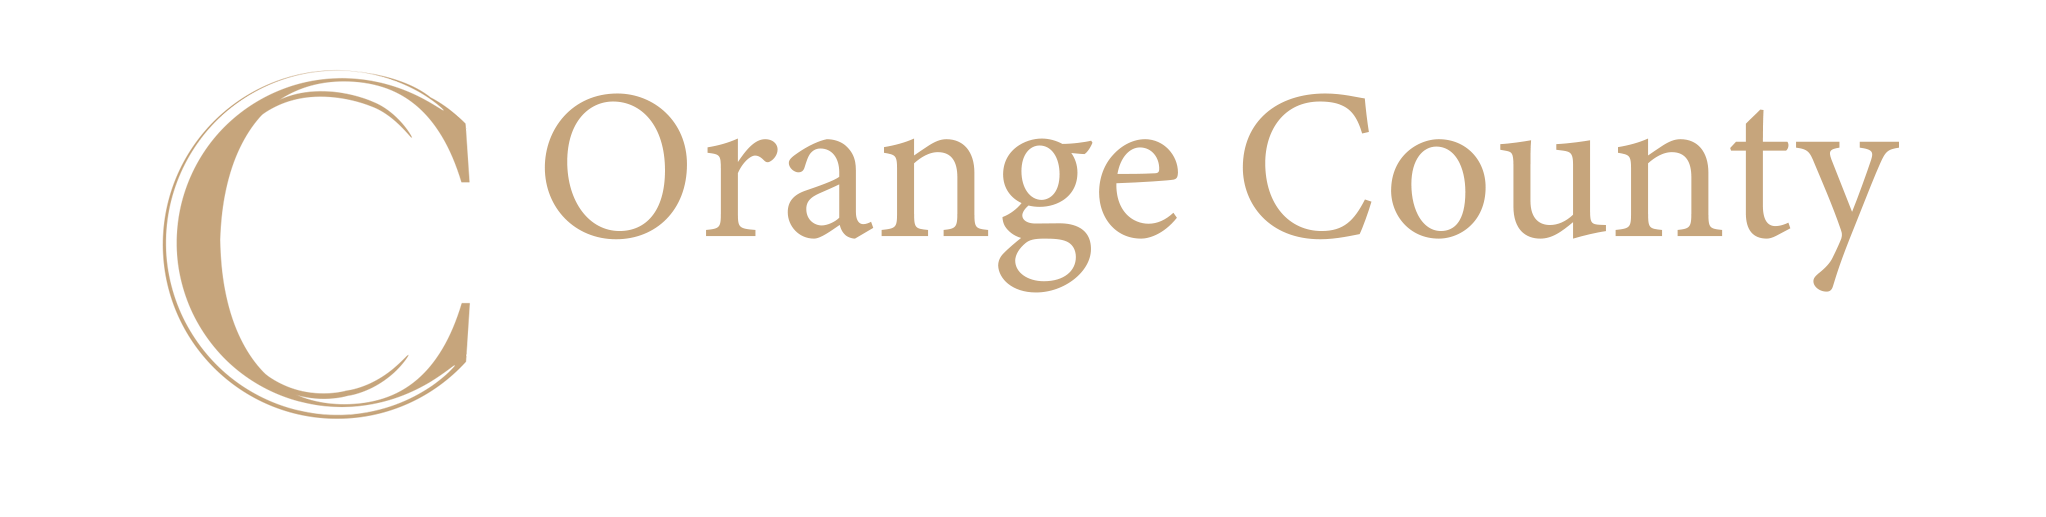 Orange County Immigration Attorney logo